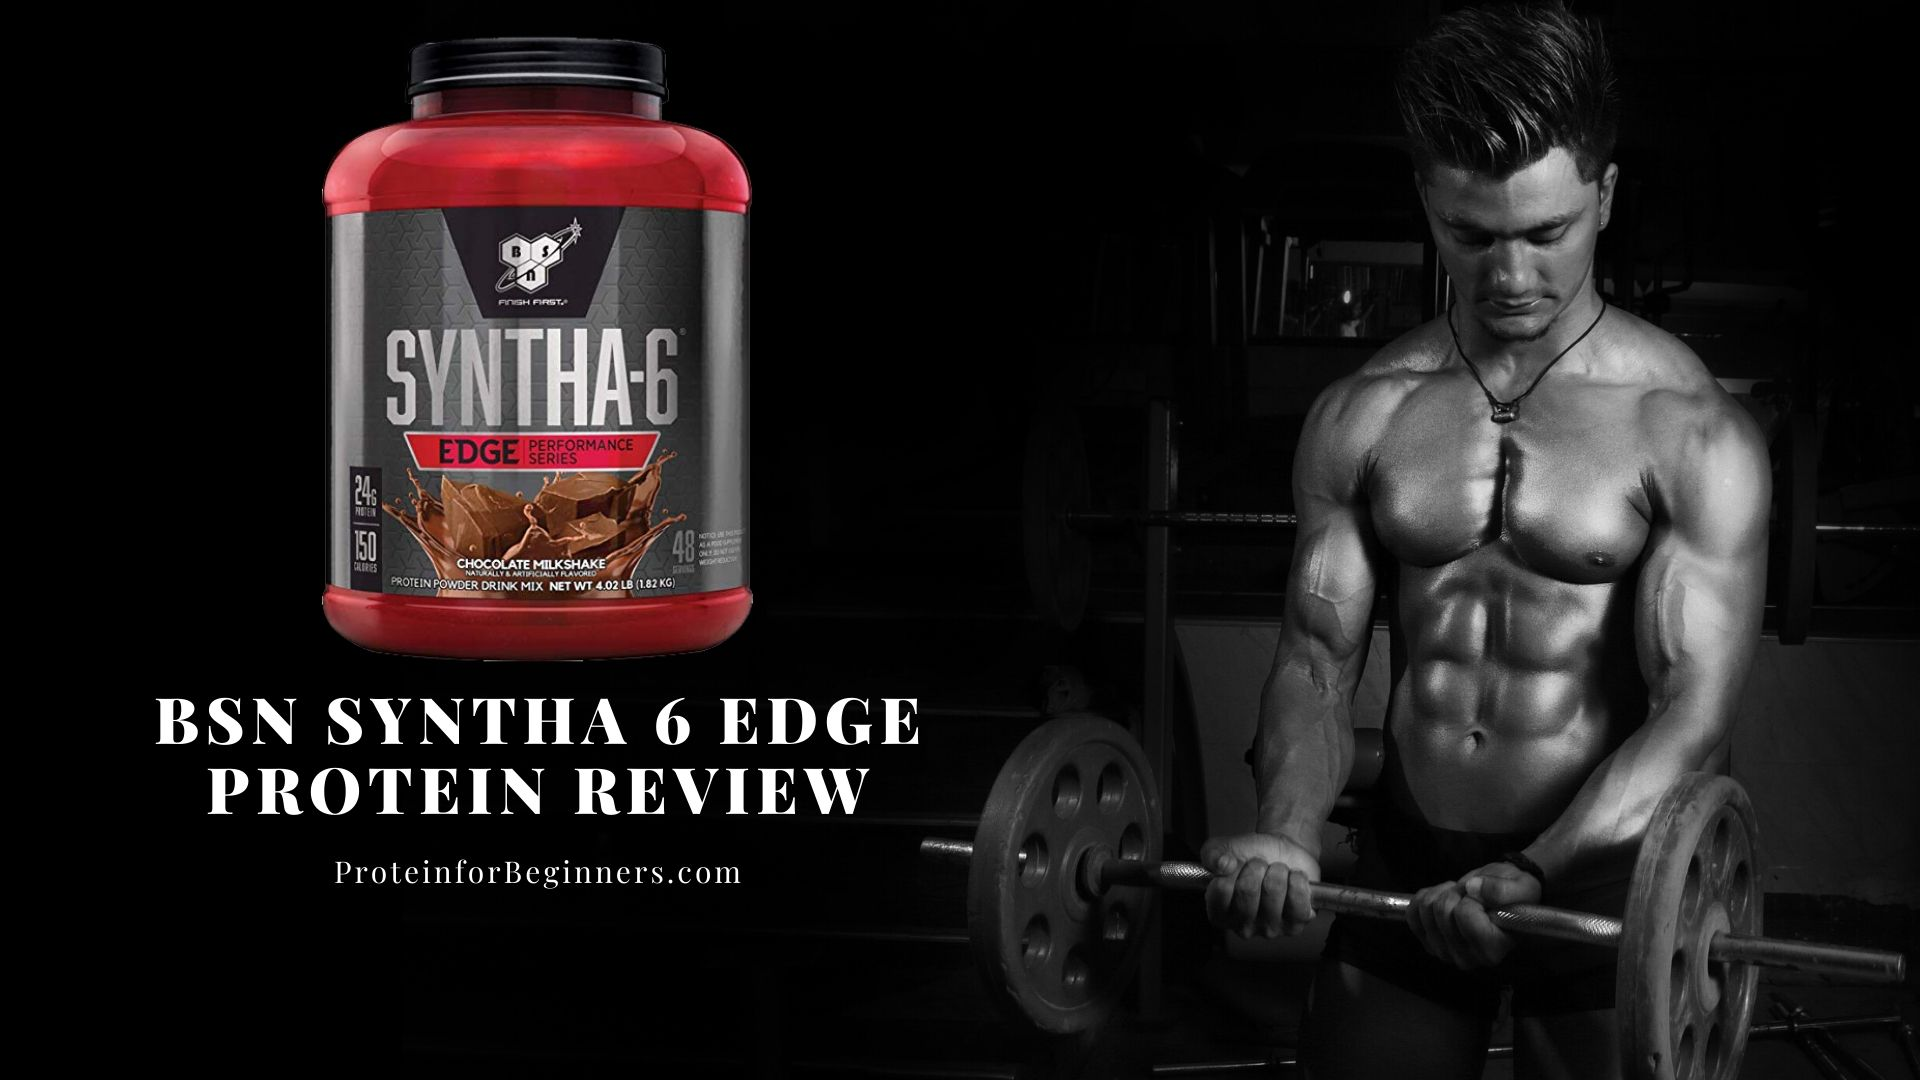 BSN Syntha 6 Edge Protein Review